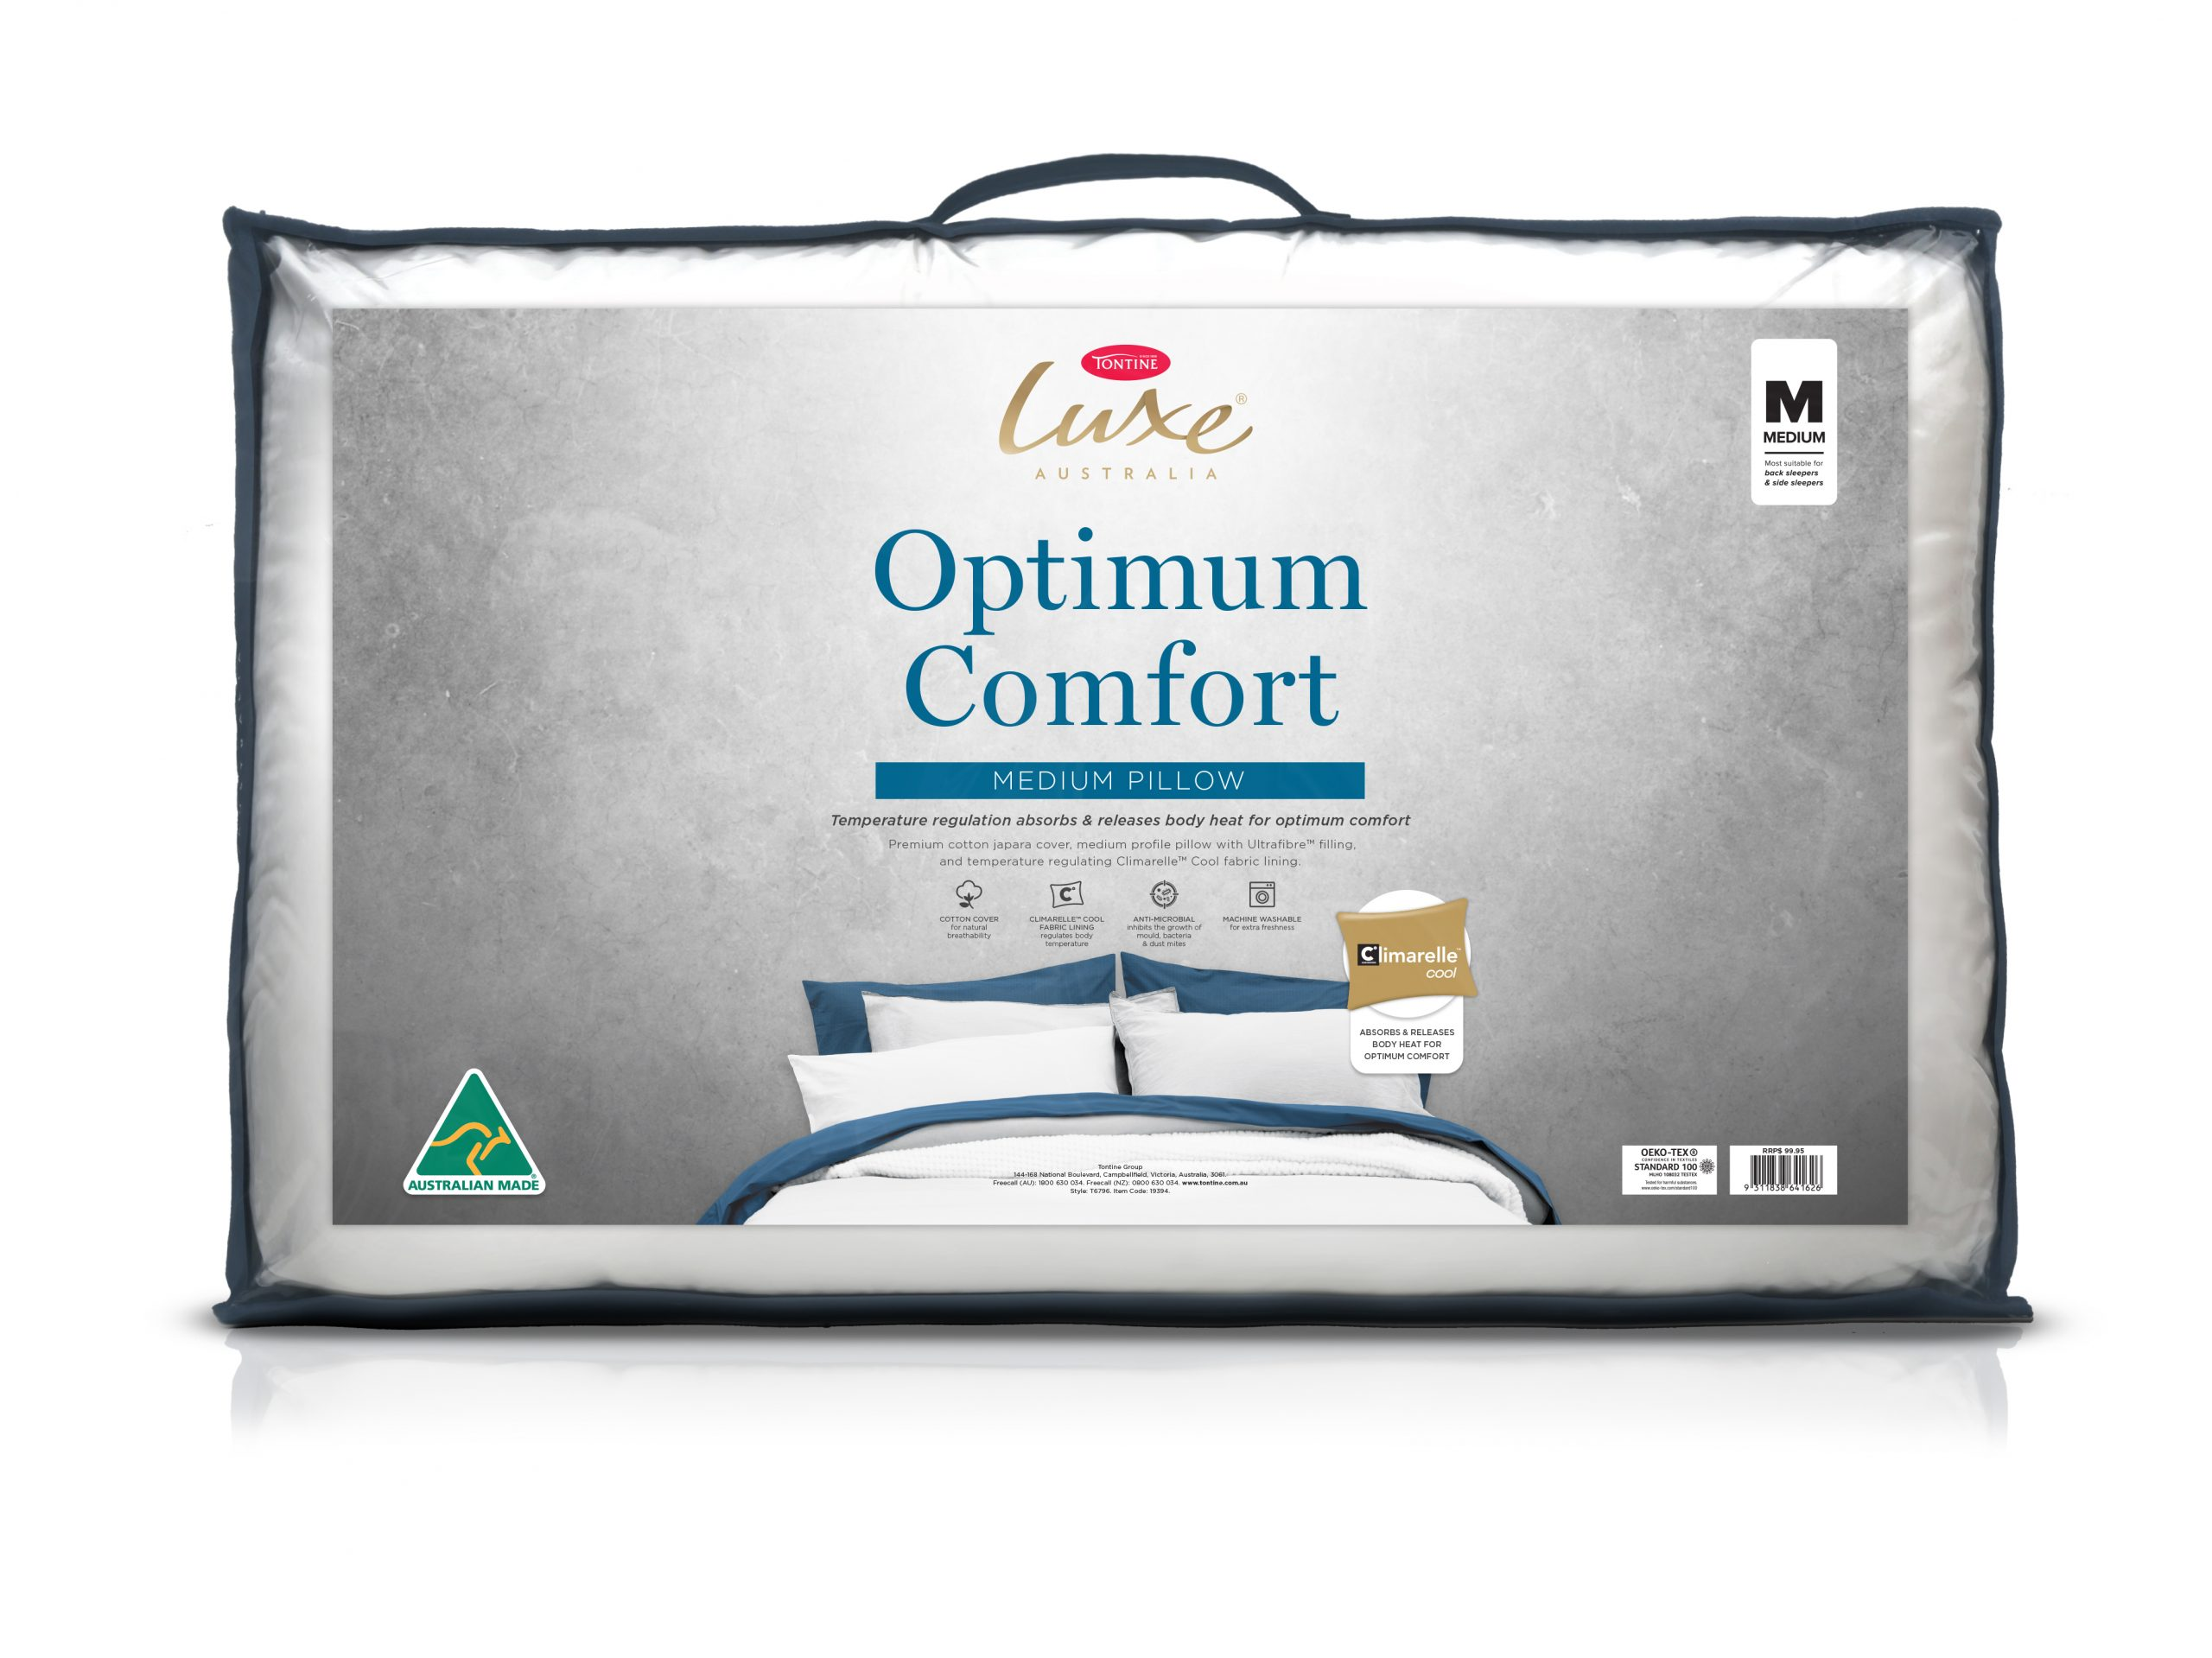 Tontine Luxe Optimum Comfort Temperature Control Medium Pillow